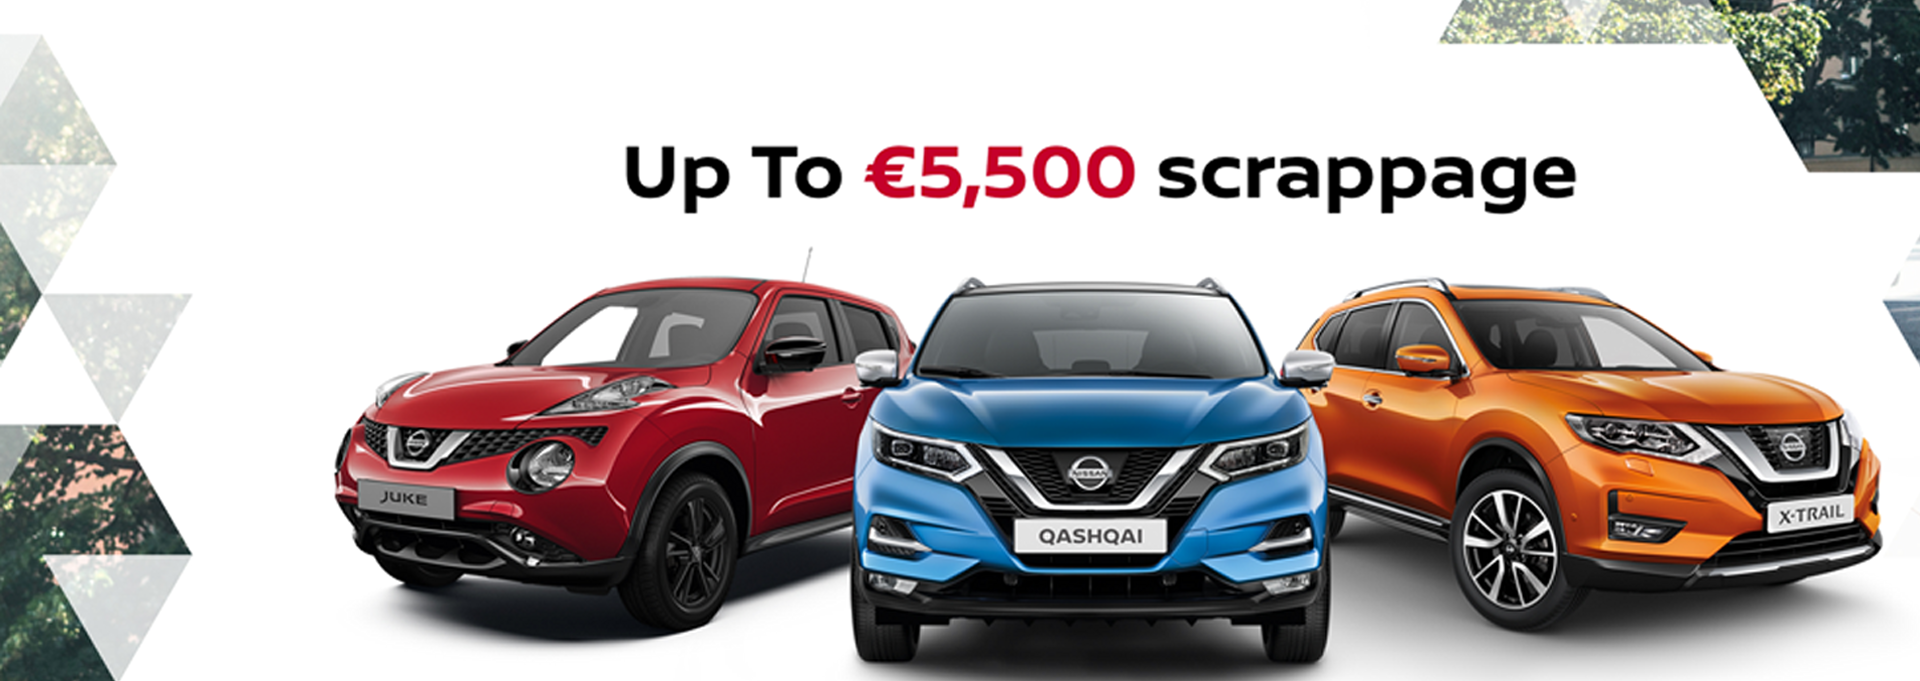 Scrappage Offer